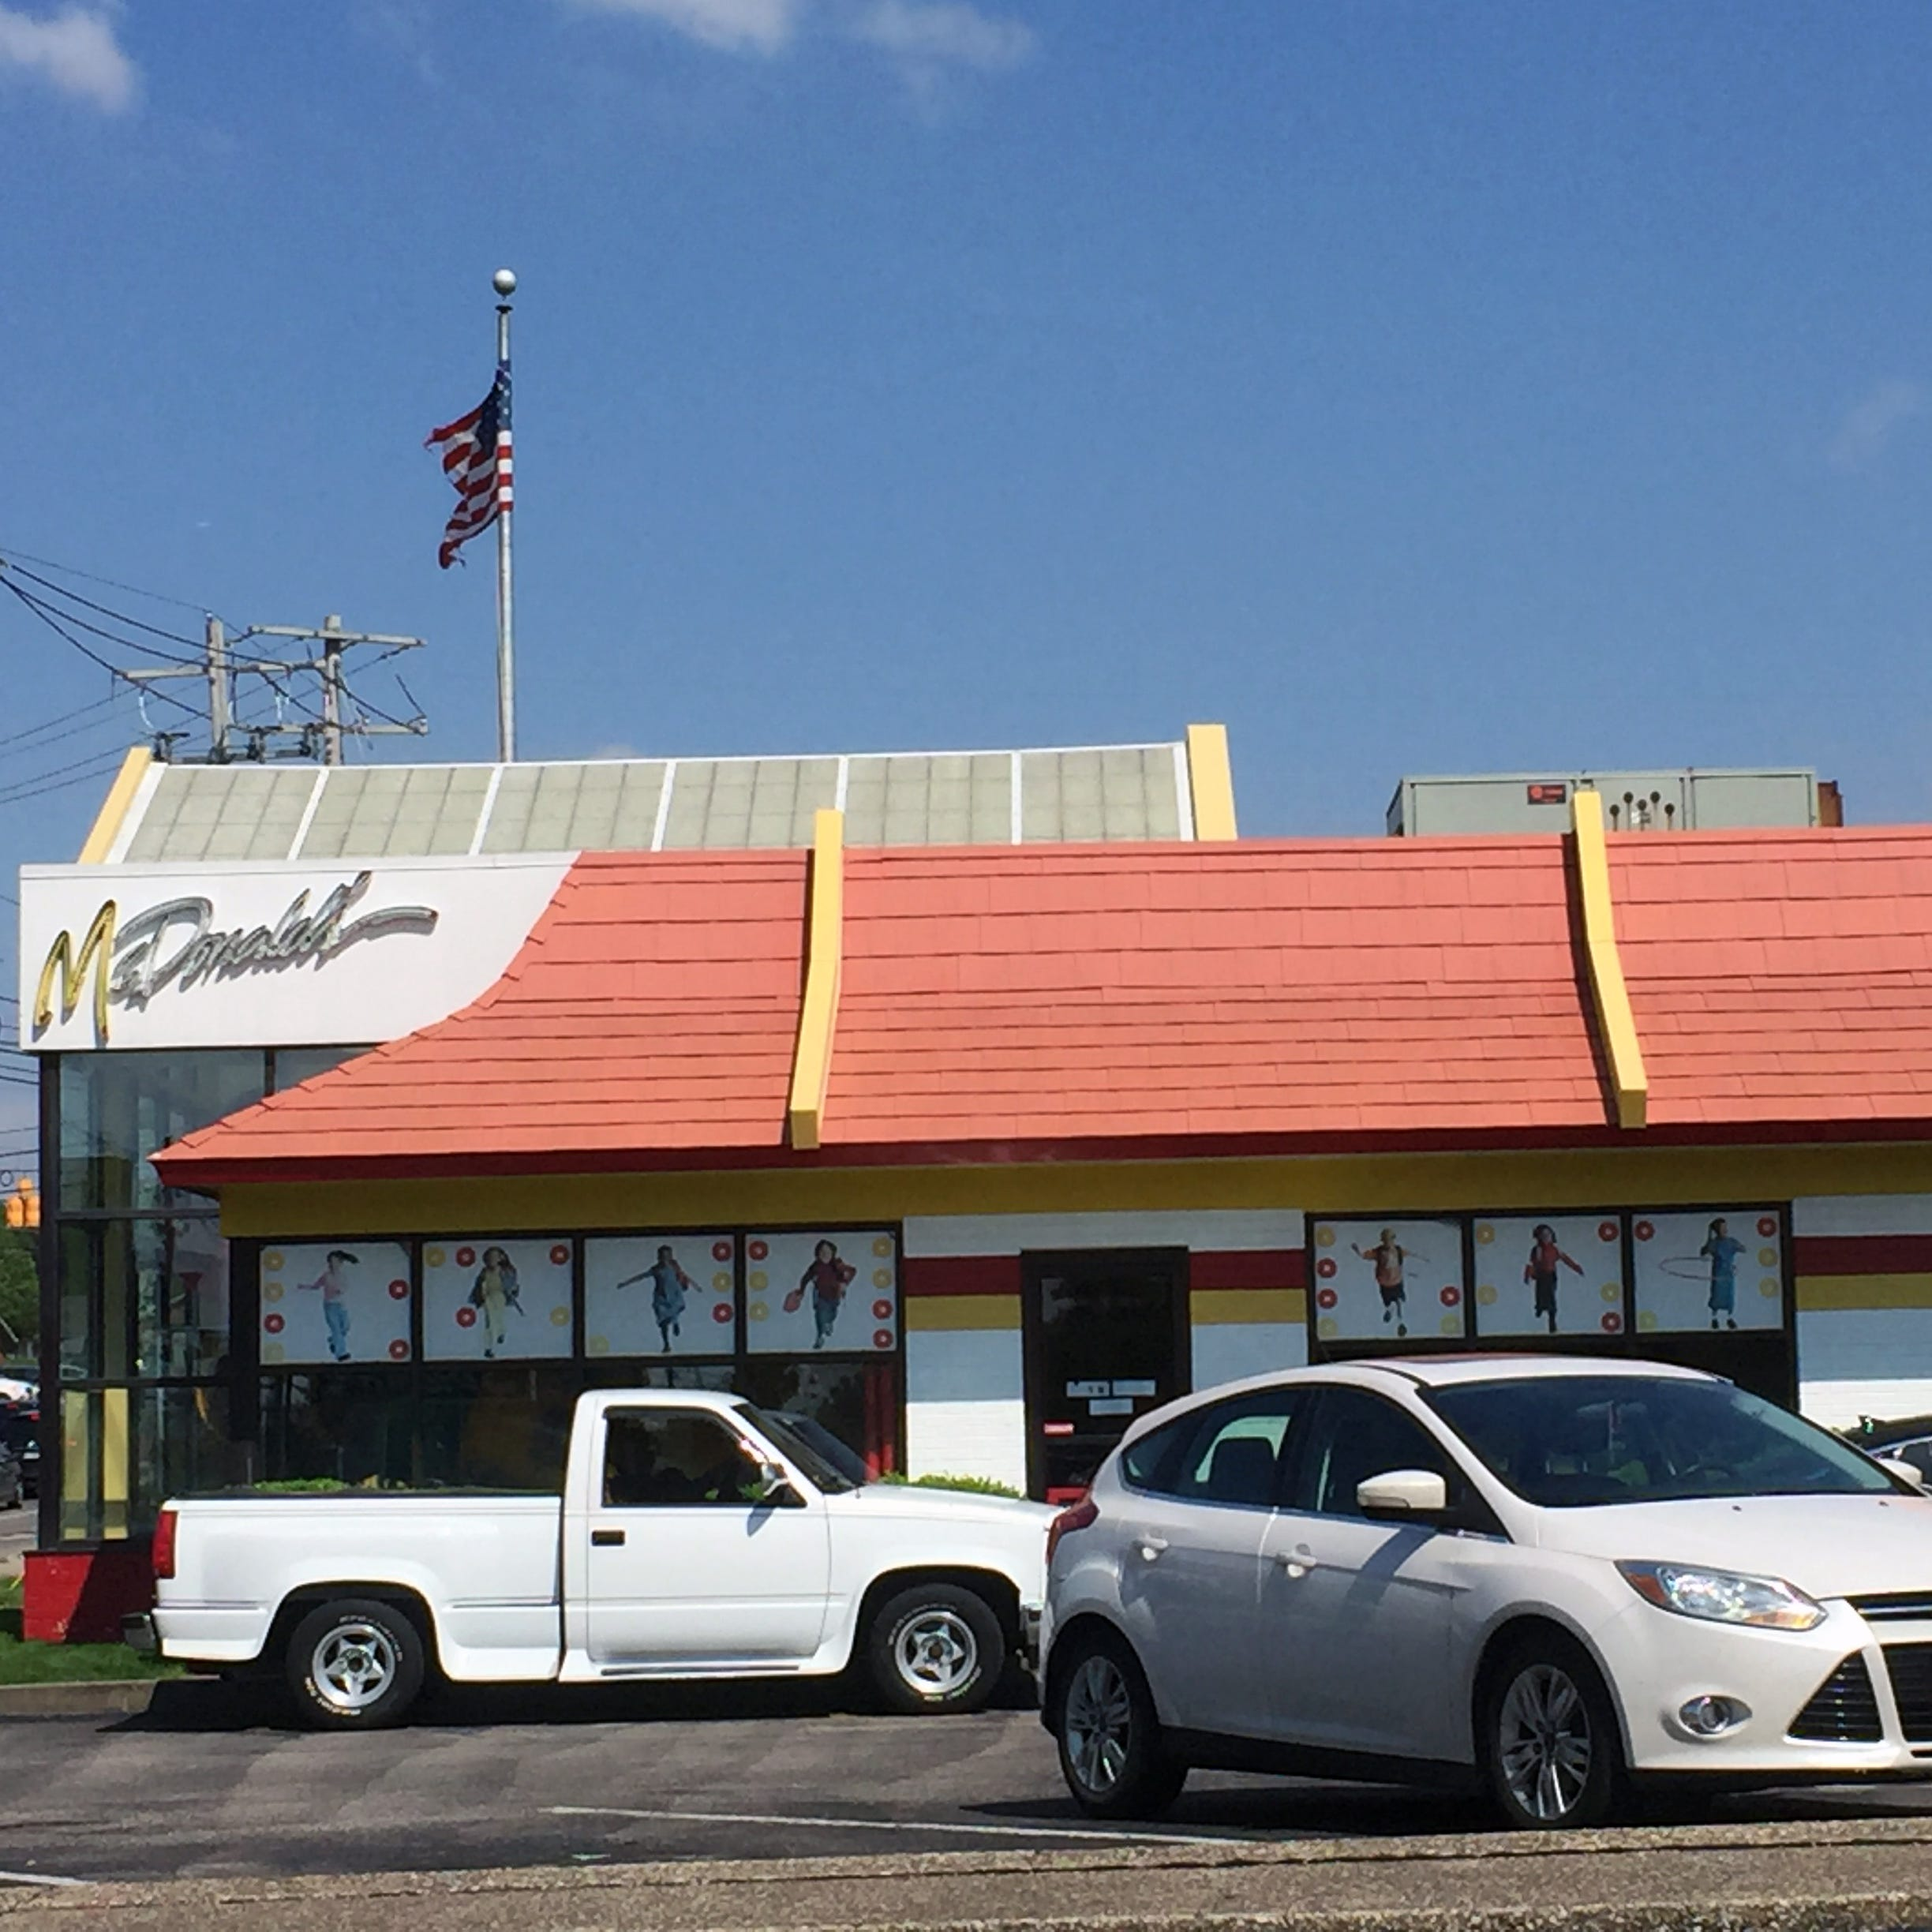 McDonald's considers remodel or rebuild of Lincoln Avenue store in Evansville